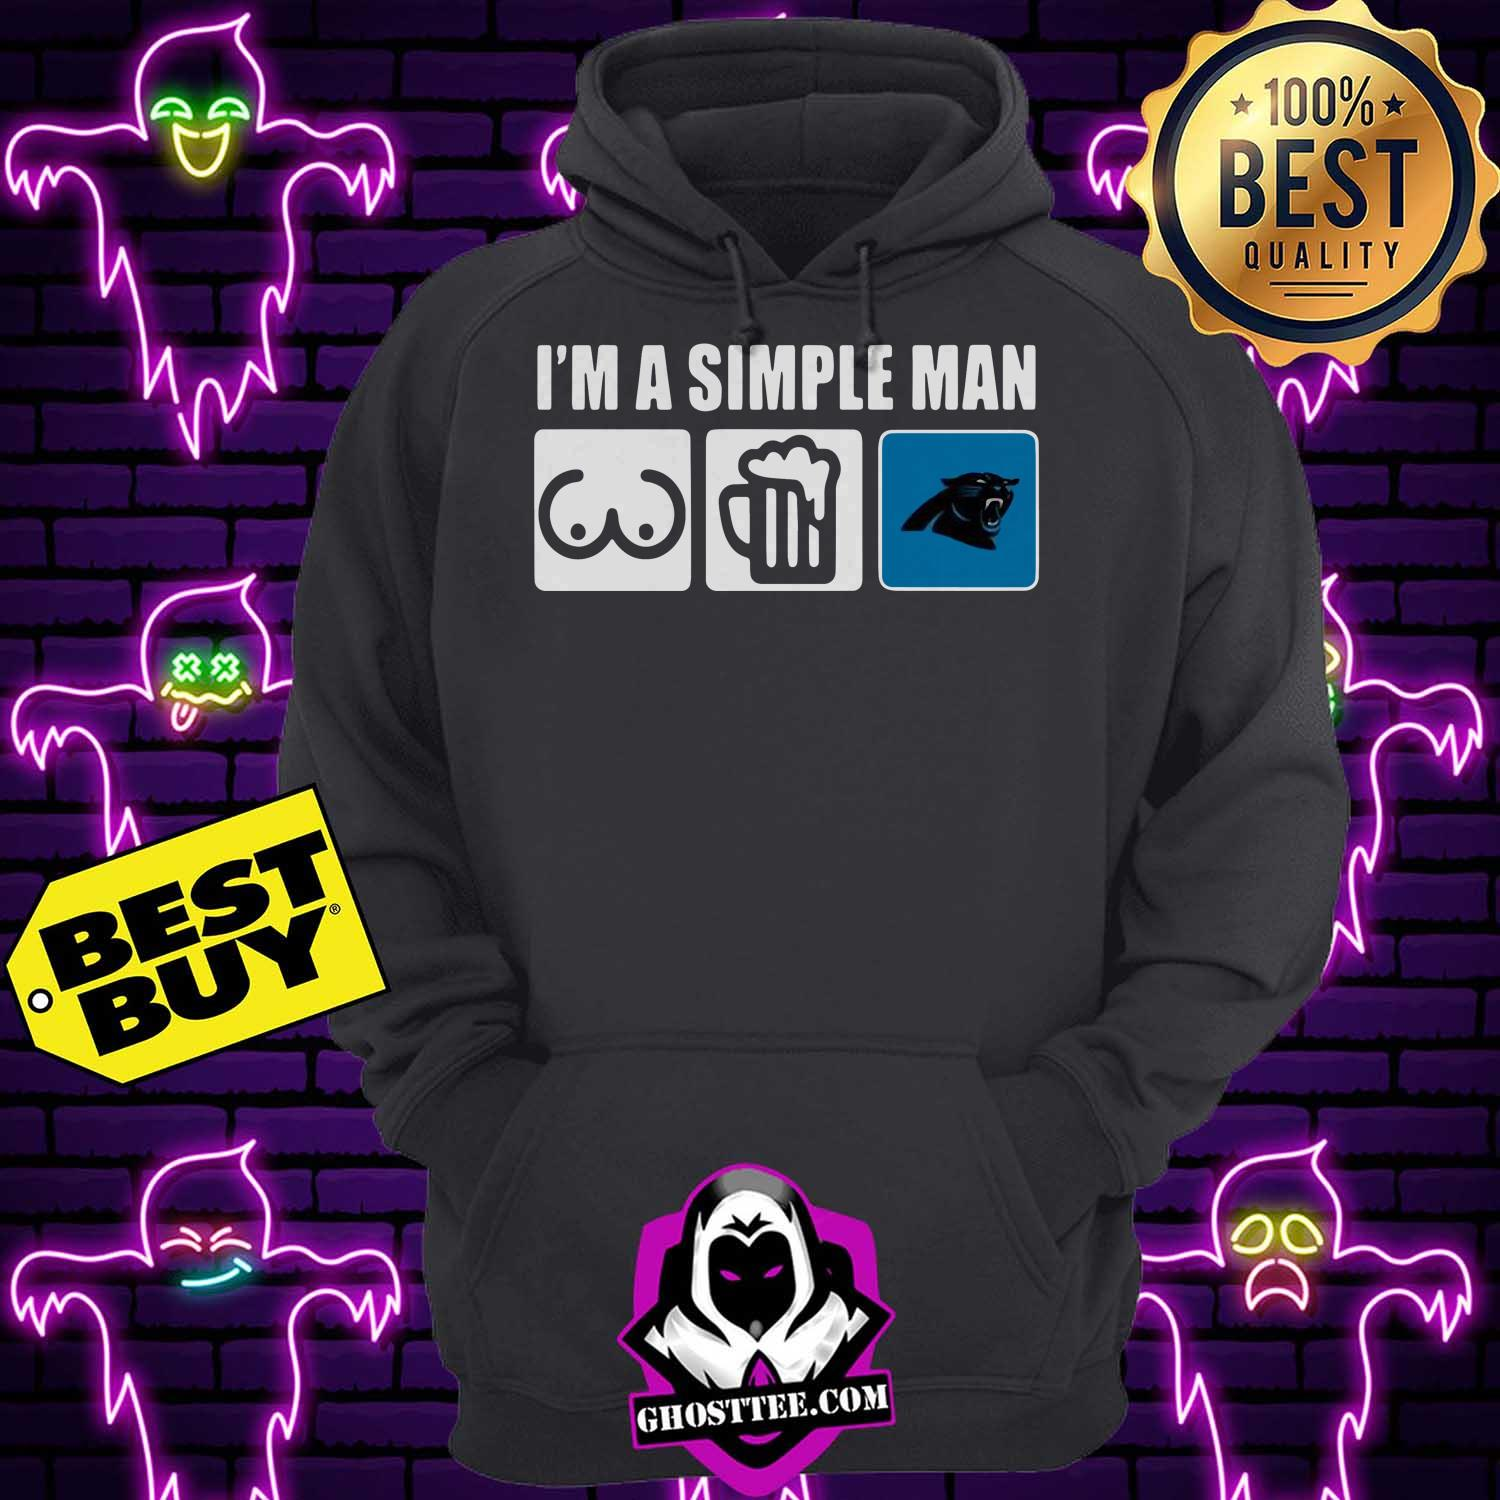 im a simple man loves bobs beer carolina panthers hoodie 1 - I'm A Simple man Loves Bobs Beer Carolina Panthers shirt